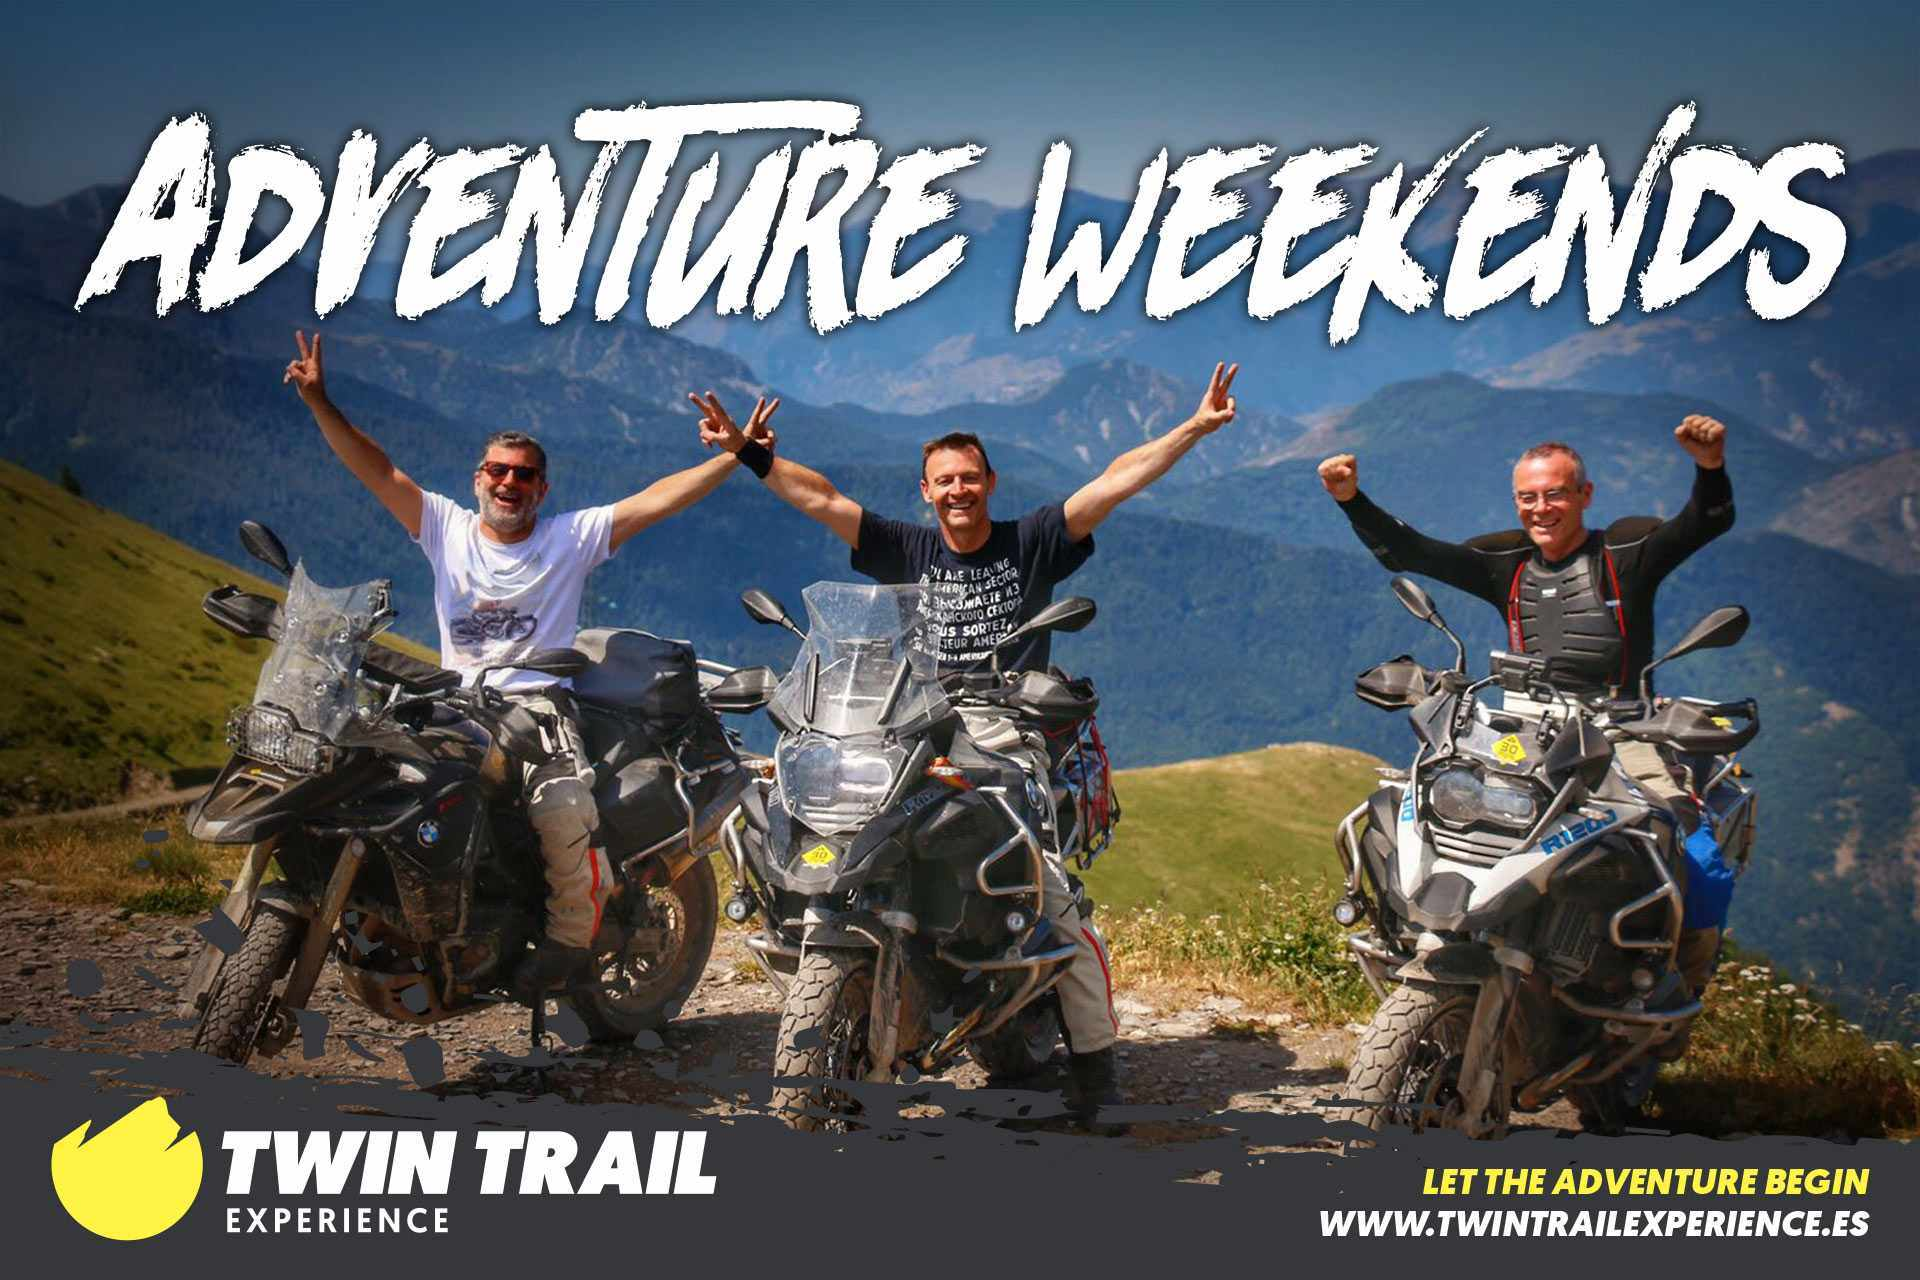 TwinTrail Adventure Weekends